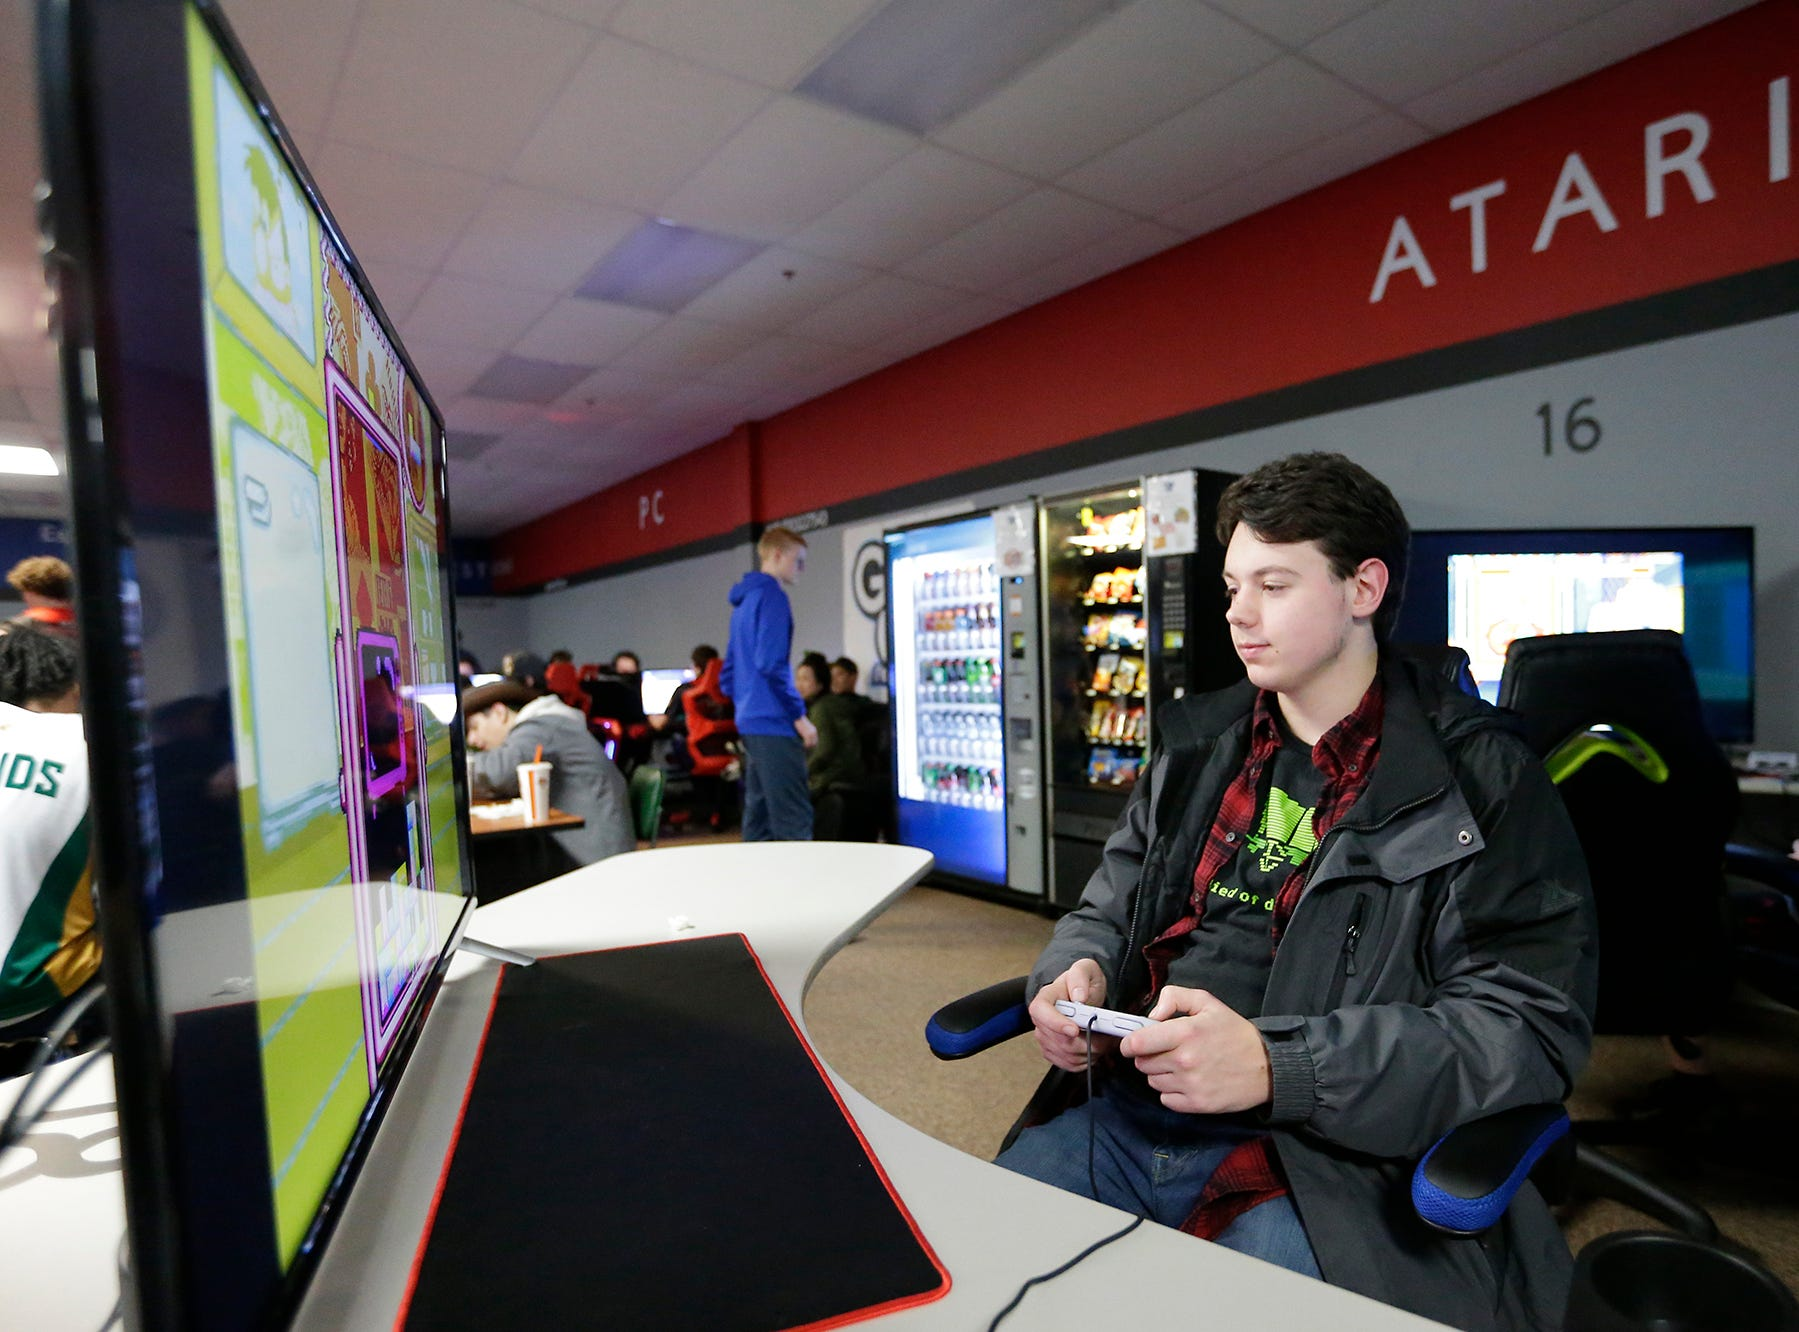 Reese Rognsvoog of Racine is one of dozens of Students from schools throughout Wisconsin taking part in the Wisconsin High School Esports Association's State Championship Saturday, April 13, 2019 at Game On in Fond du Lac Wisconsin. Teams compete in 4 games during the event. Overwatch, Rocket League, League of Legends, and Smash Ultimate. Doug Raflik/USA TODAY NETWORK-Wisconsin